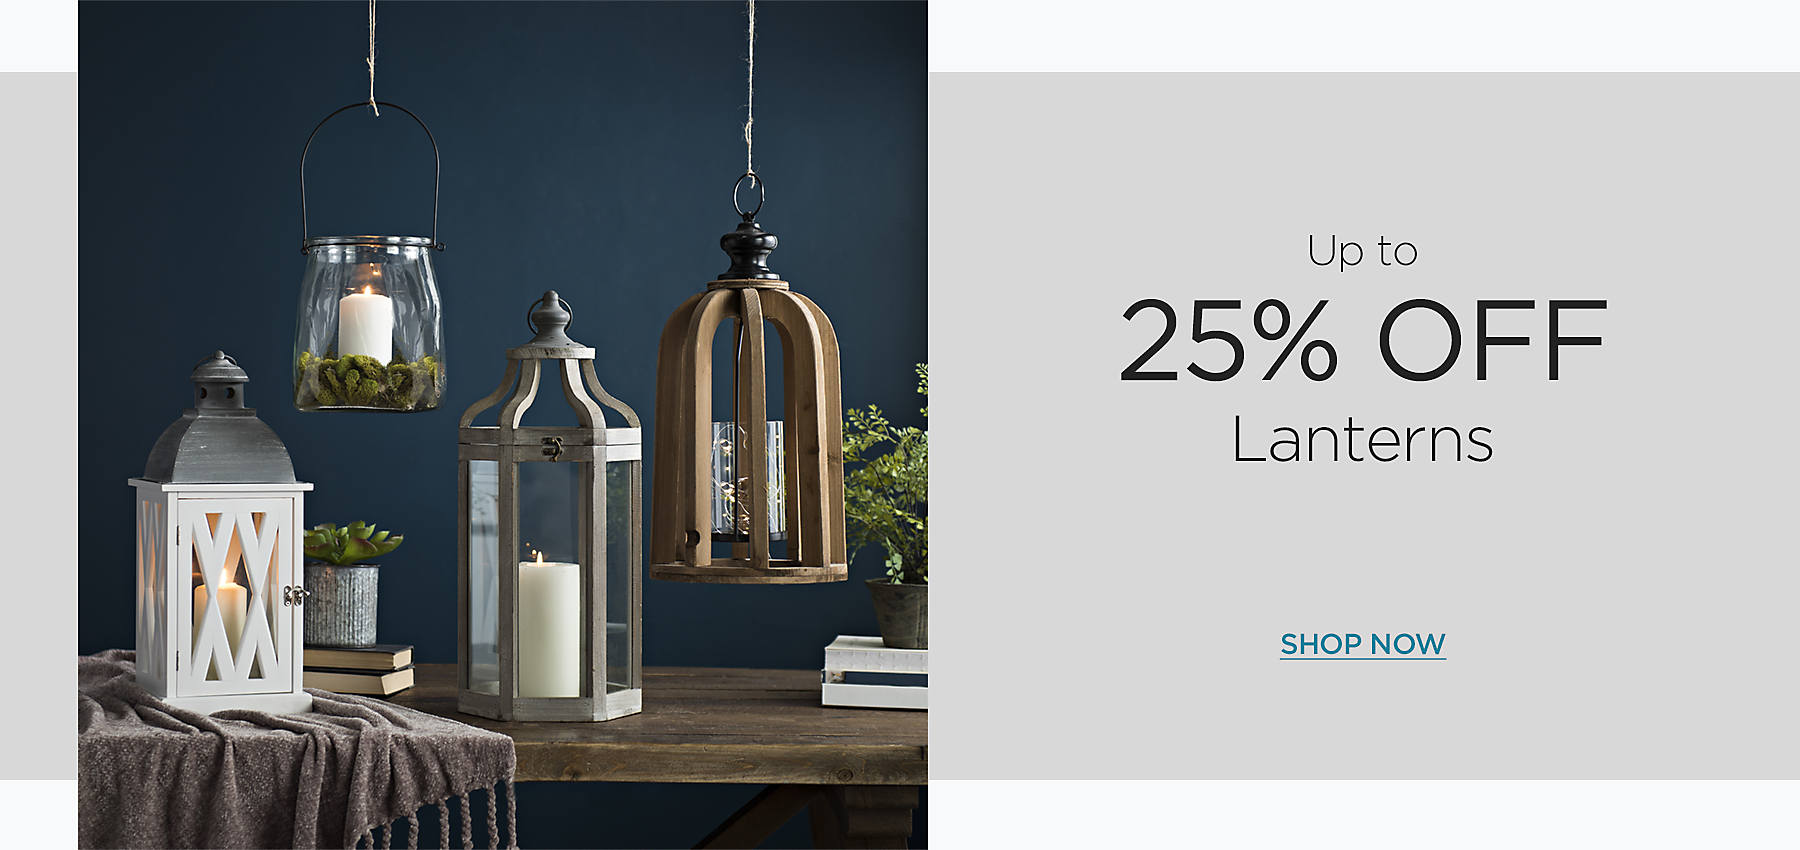 Up to 25% Off Lanterns - Shop Now